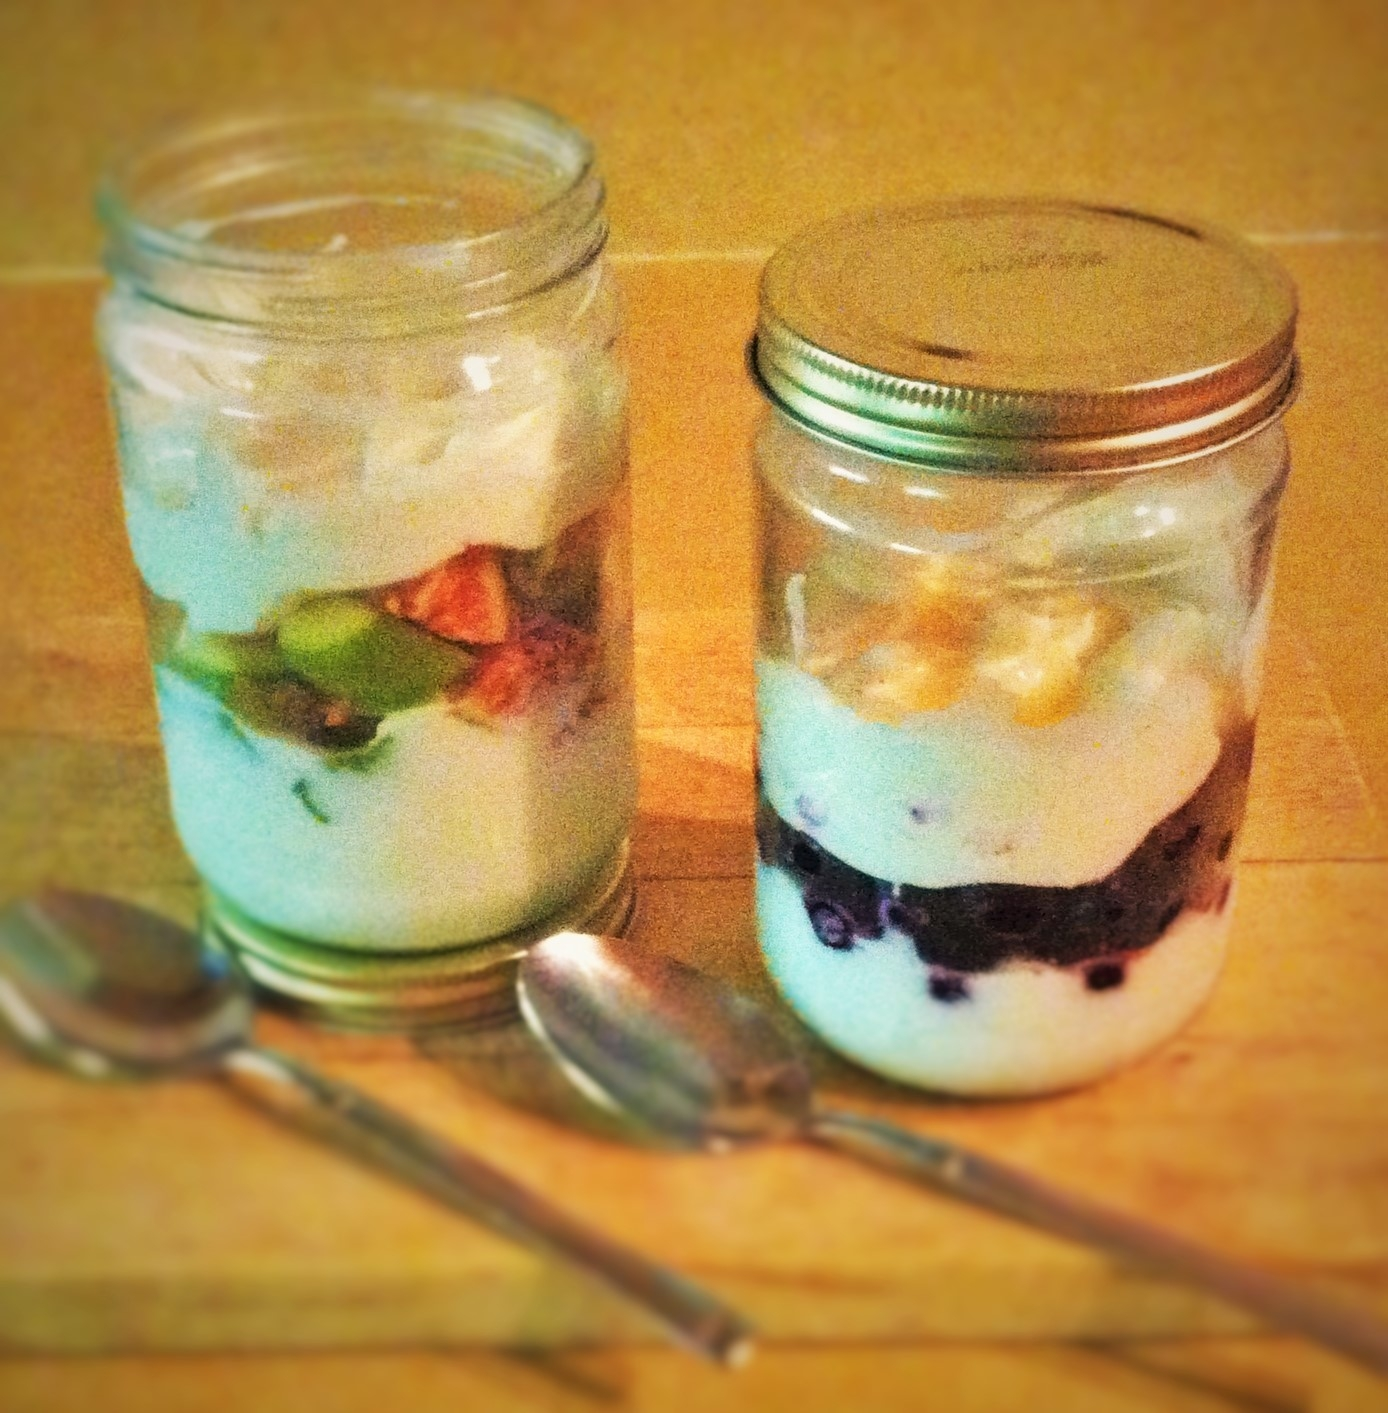 yogurt jar 2 (2)